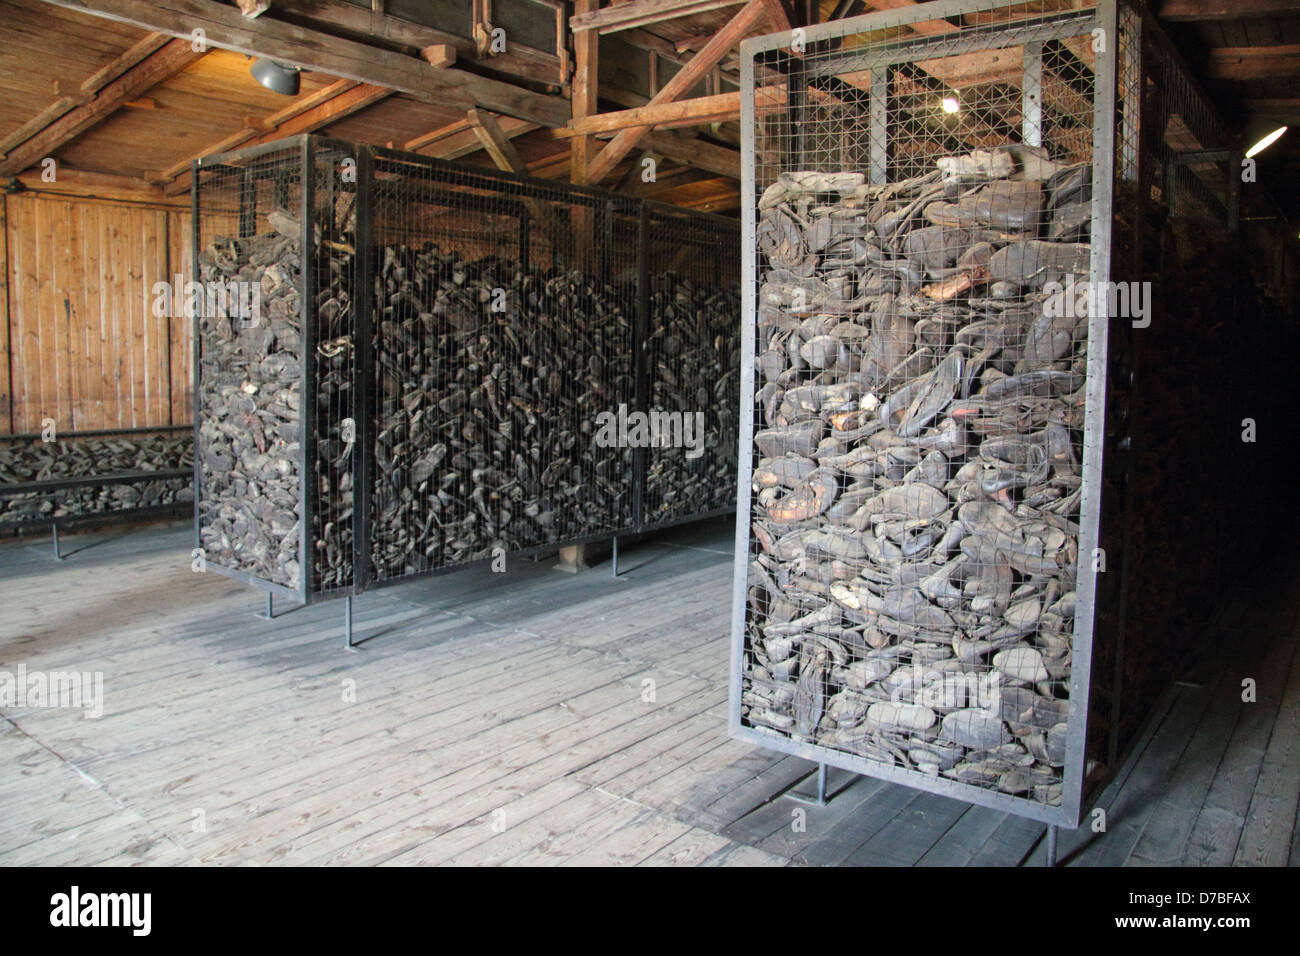 Thousands of shoes (Estimated 50,000 pairs) of the victims displayed at Majdanek death camp Stock Photo